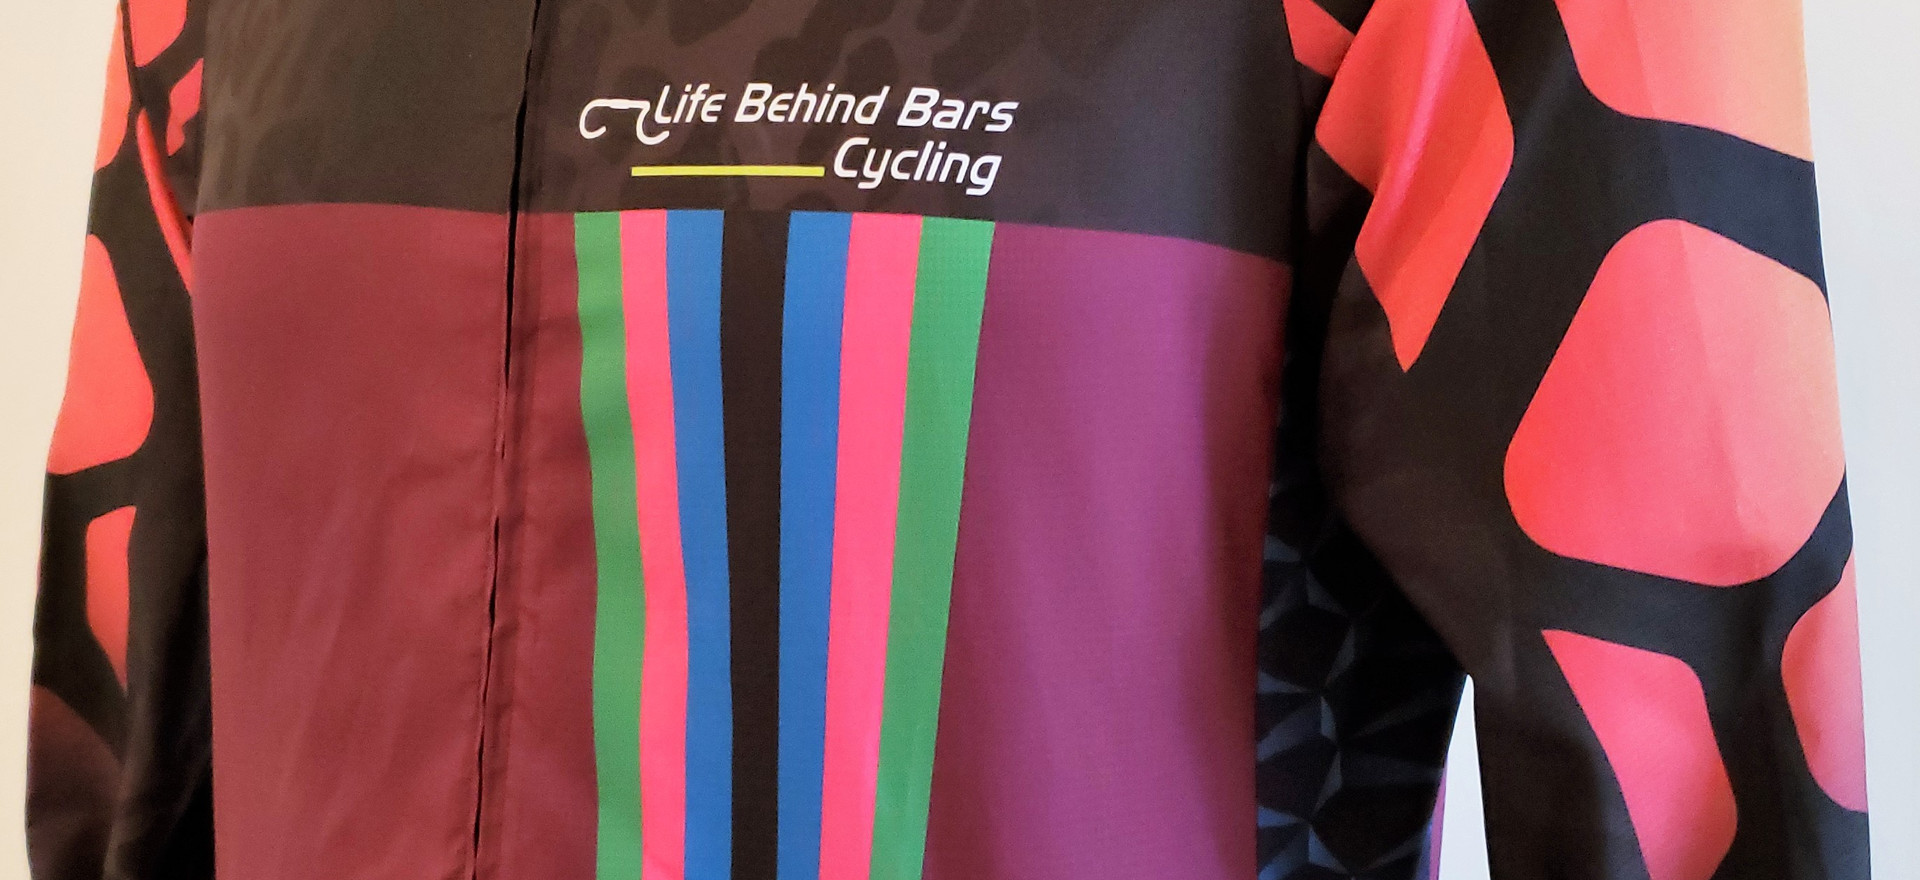 Custom Cycling Jackets | Custom Jackets | Custom Cycling Jackets for Teams, Clubs & Individuals | custom tradeshow jackets | Custom Cycling Team Apparel | Custom Printed Jackets